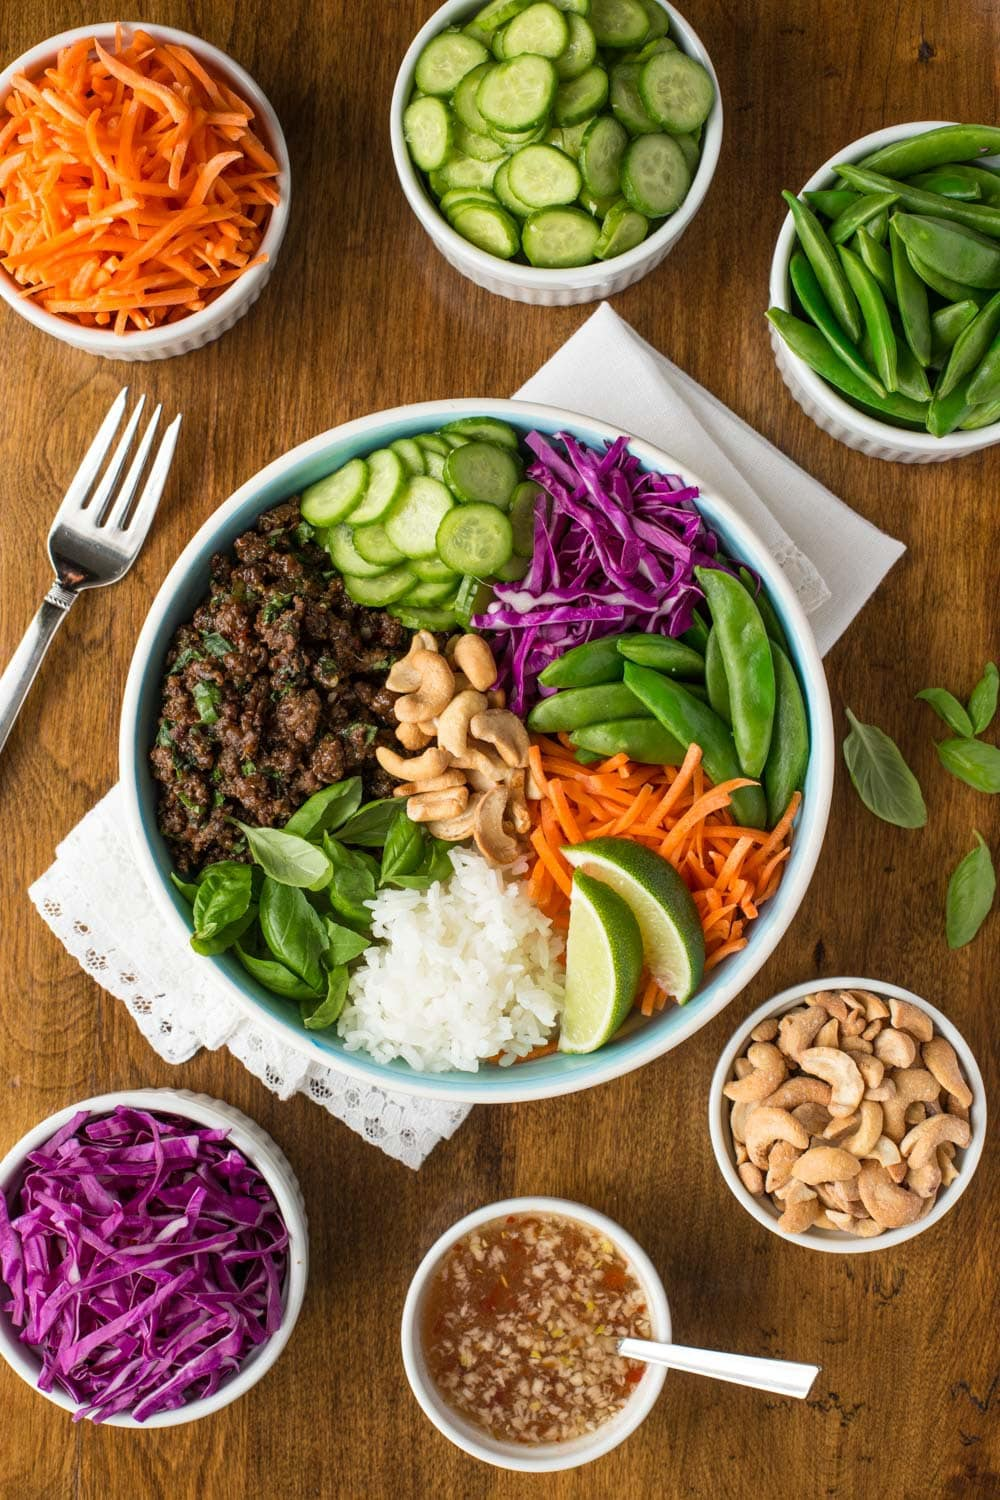 30 Minute Thai Basil Beef Bowls - an easy, Thai-inspired meal-in-a-bowl that's fresh, vibrant, healthy and super delicious! thecafesucrefarine.com